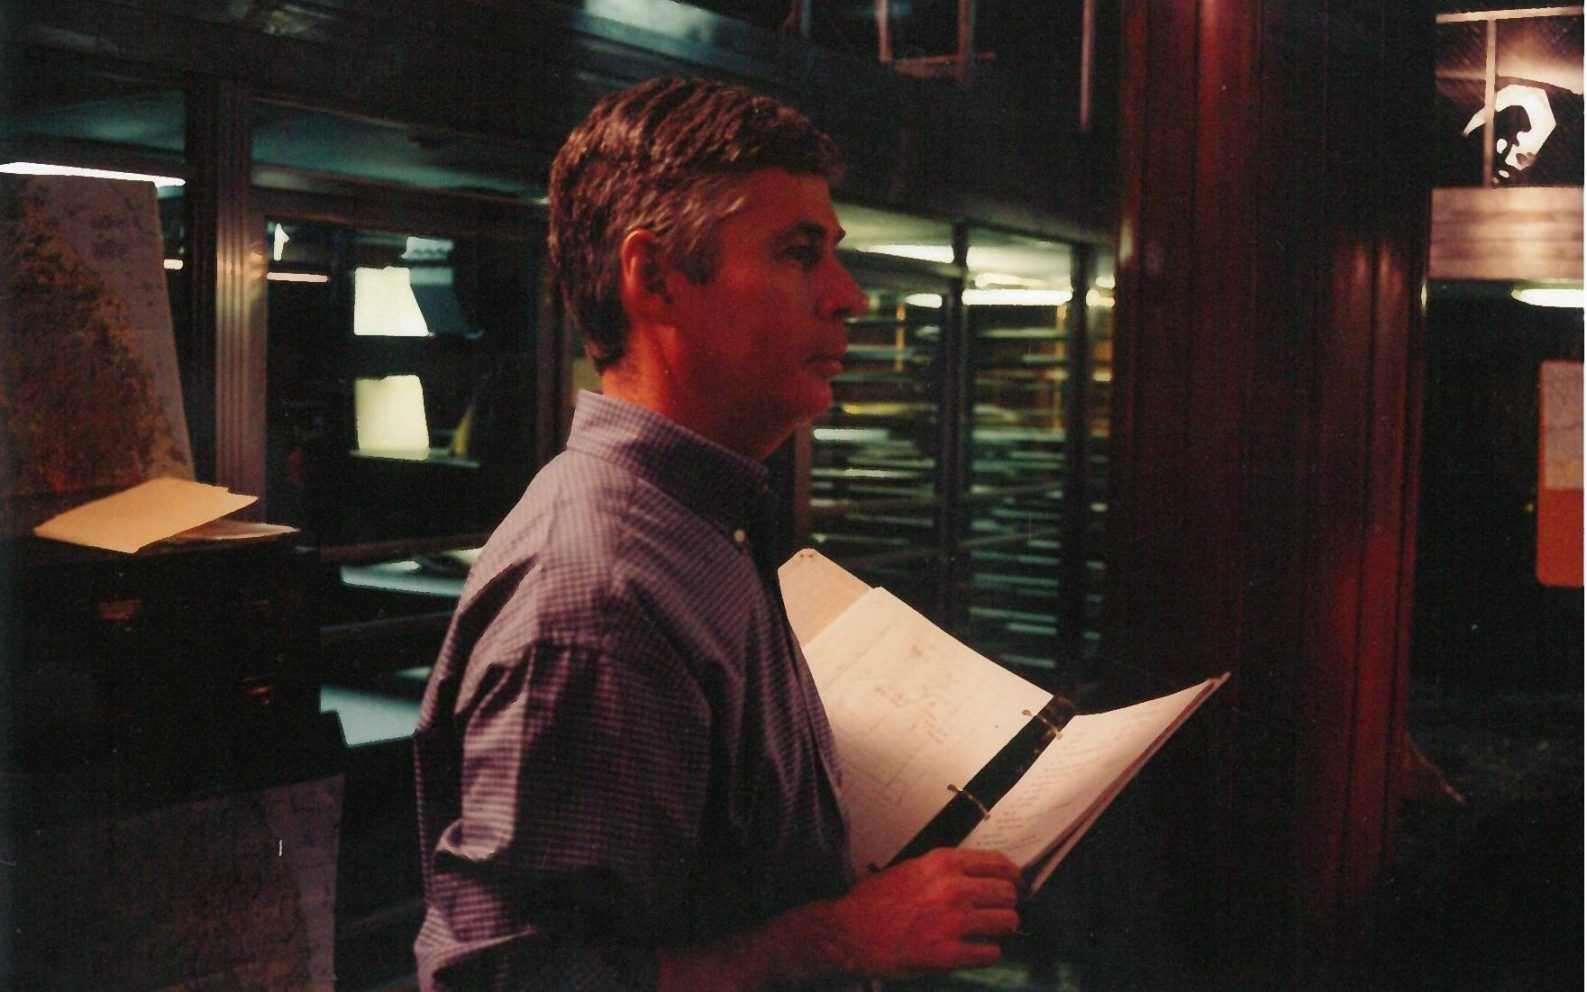 David overseeing the script while filming a reenactment